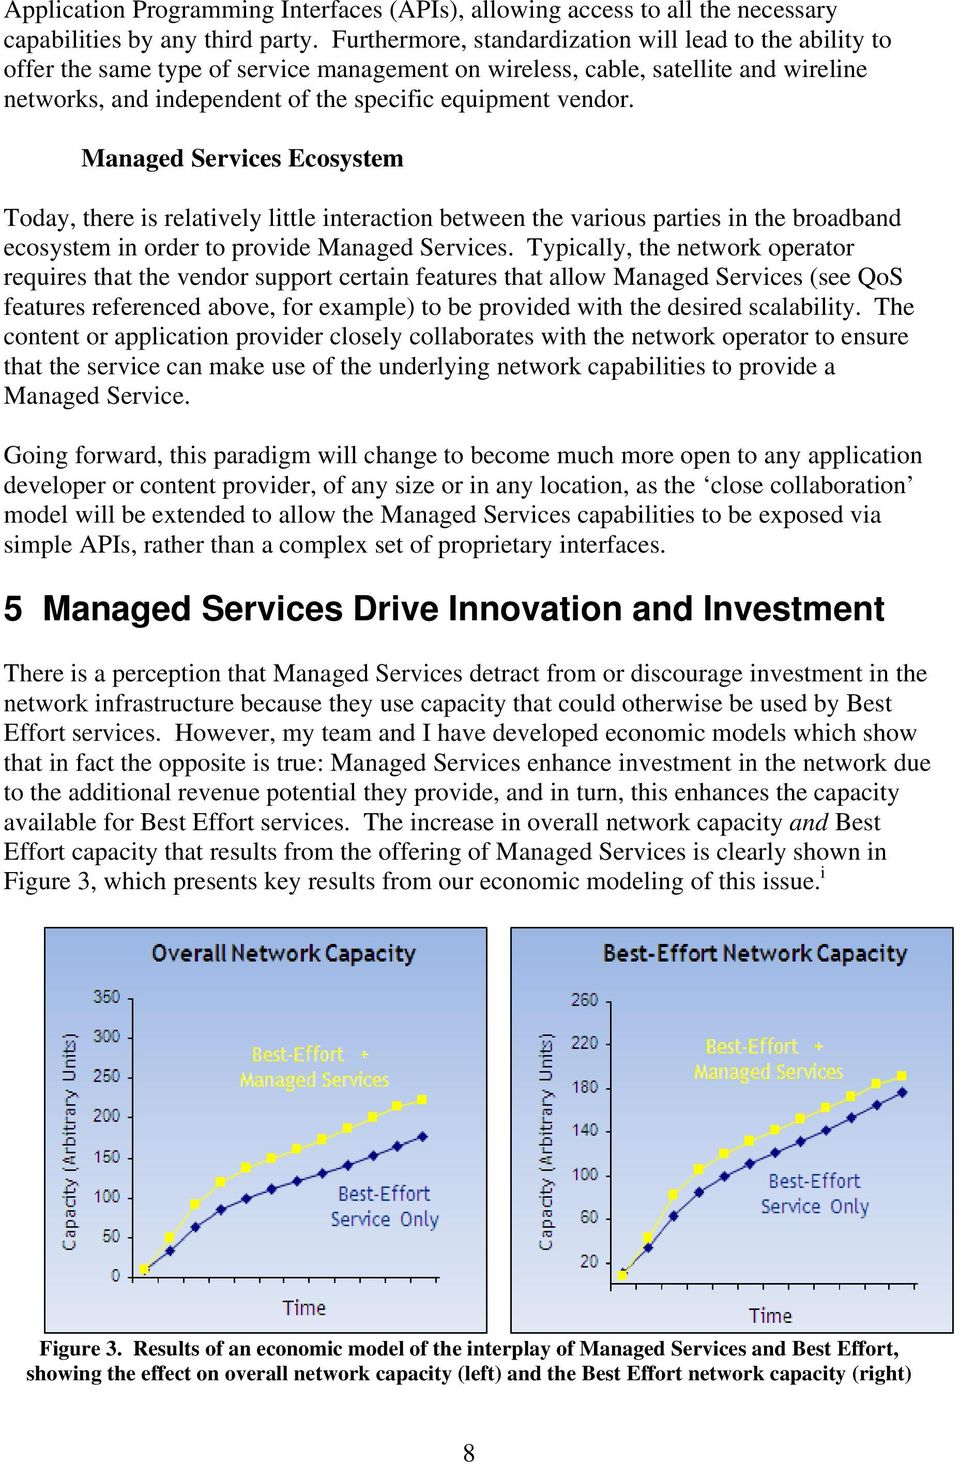 vendor. Managed Services Ecosystem Today, there is relatively little interaction between the various parties in the broadband ecosystem in order to provide Managed Services.